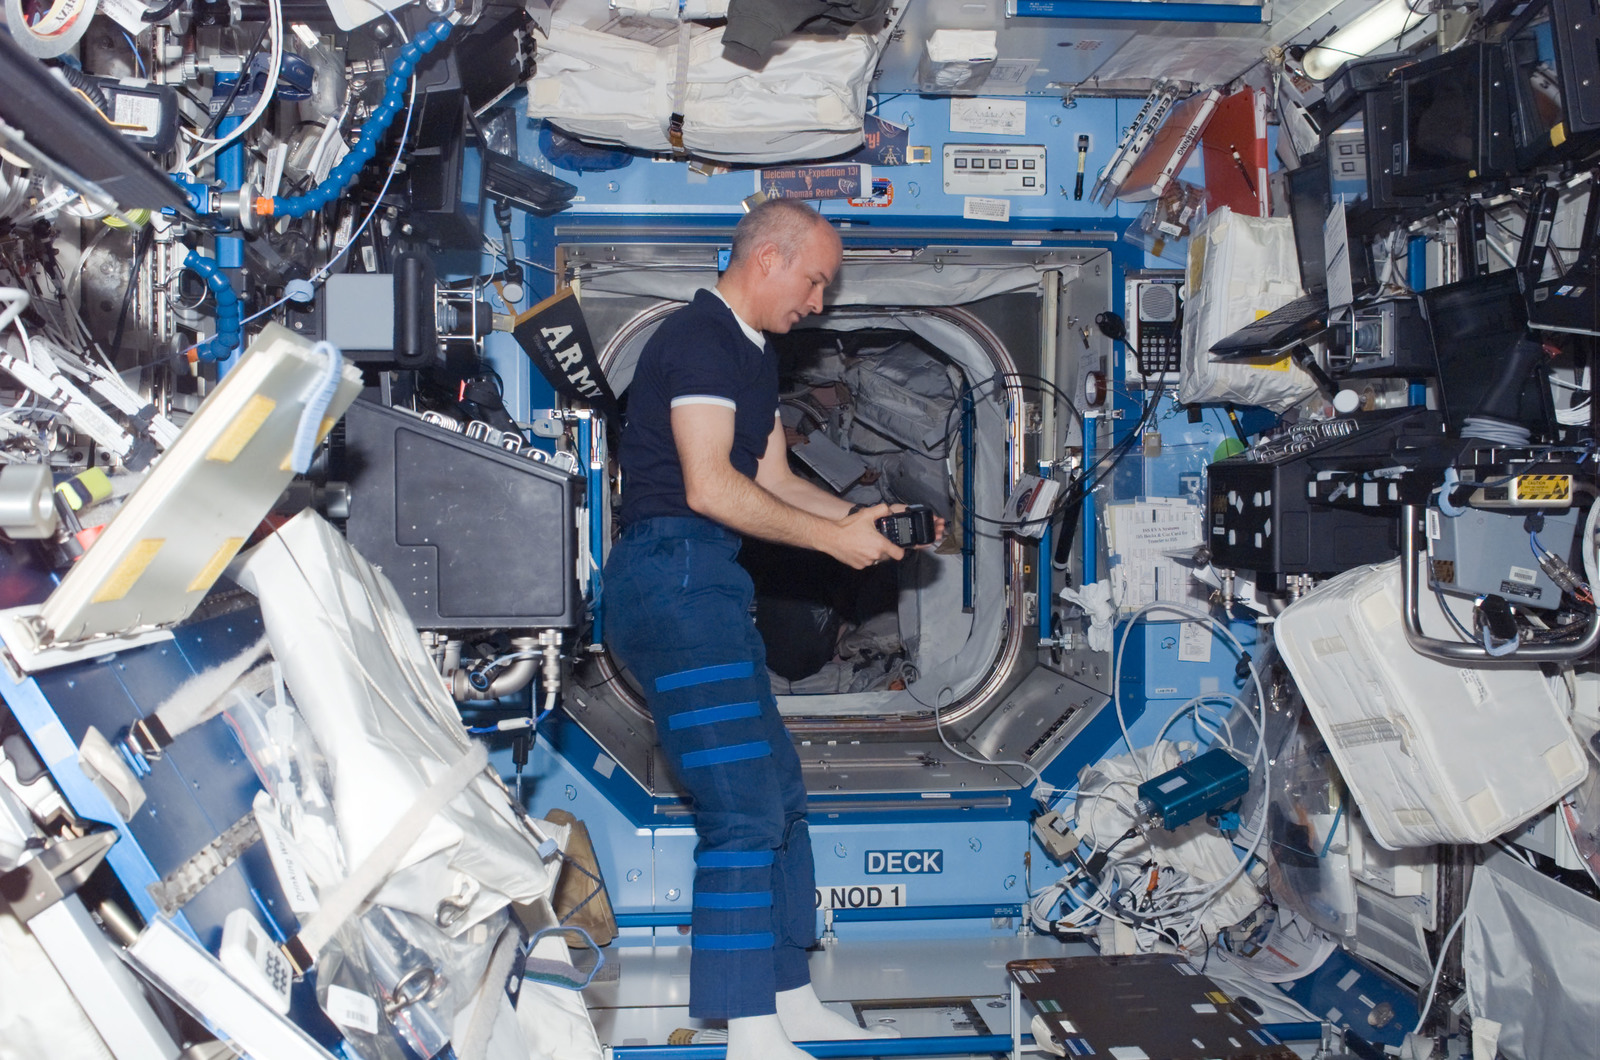 S121E06236 - STS-121 - Williams with camera flash in the U.S. Lab during STS-121 / Expedition 13 joint operations